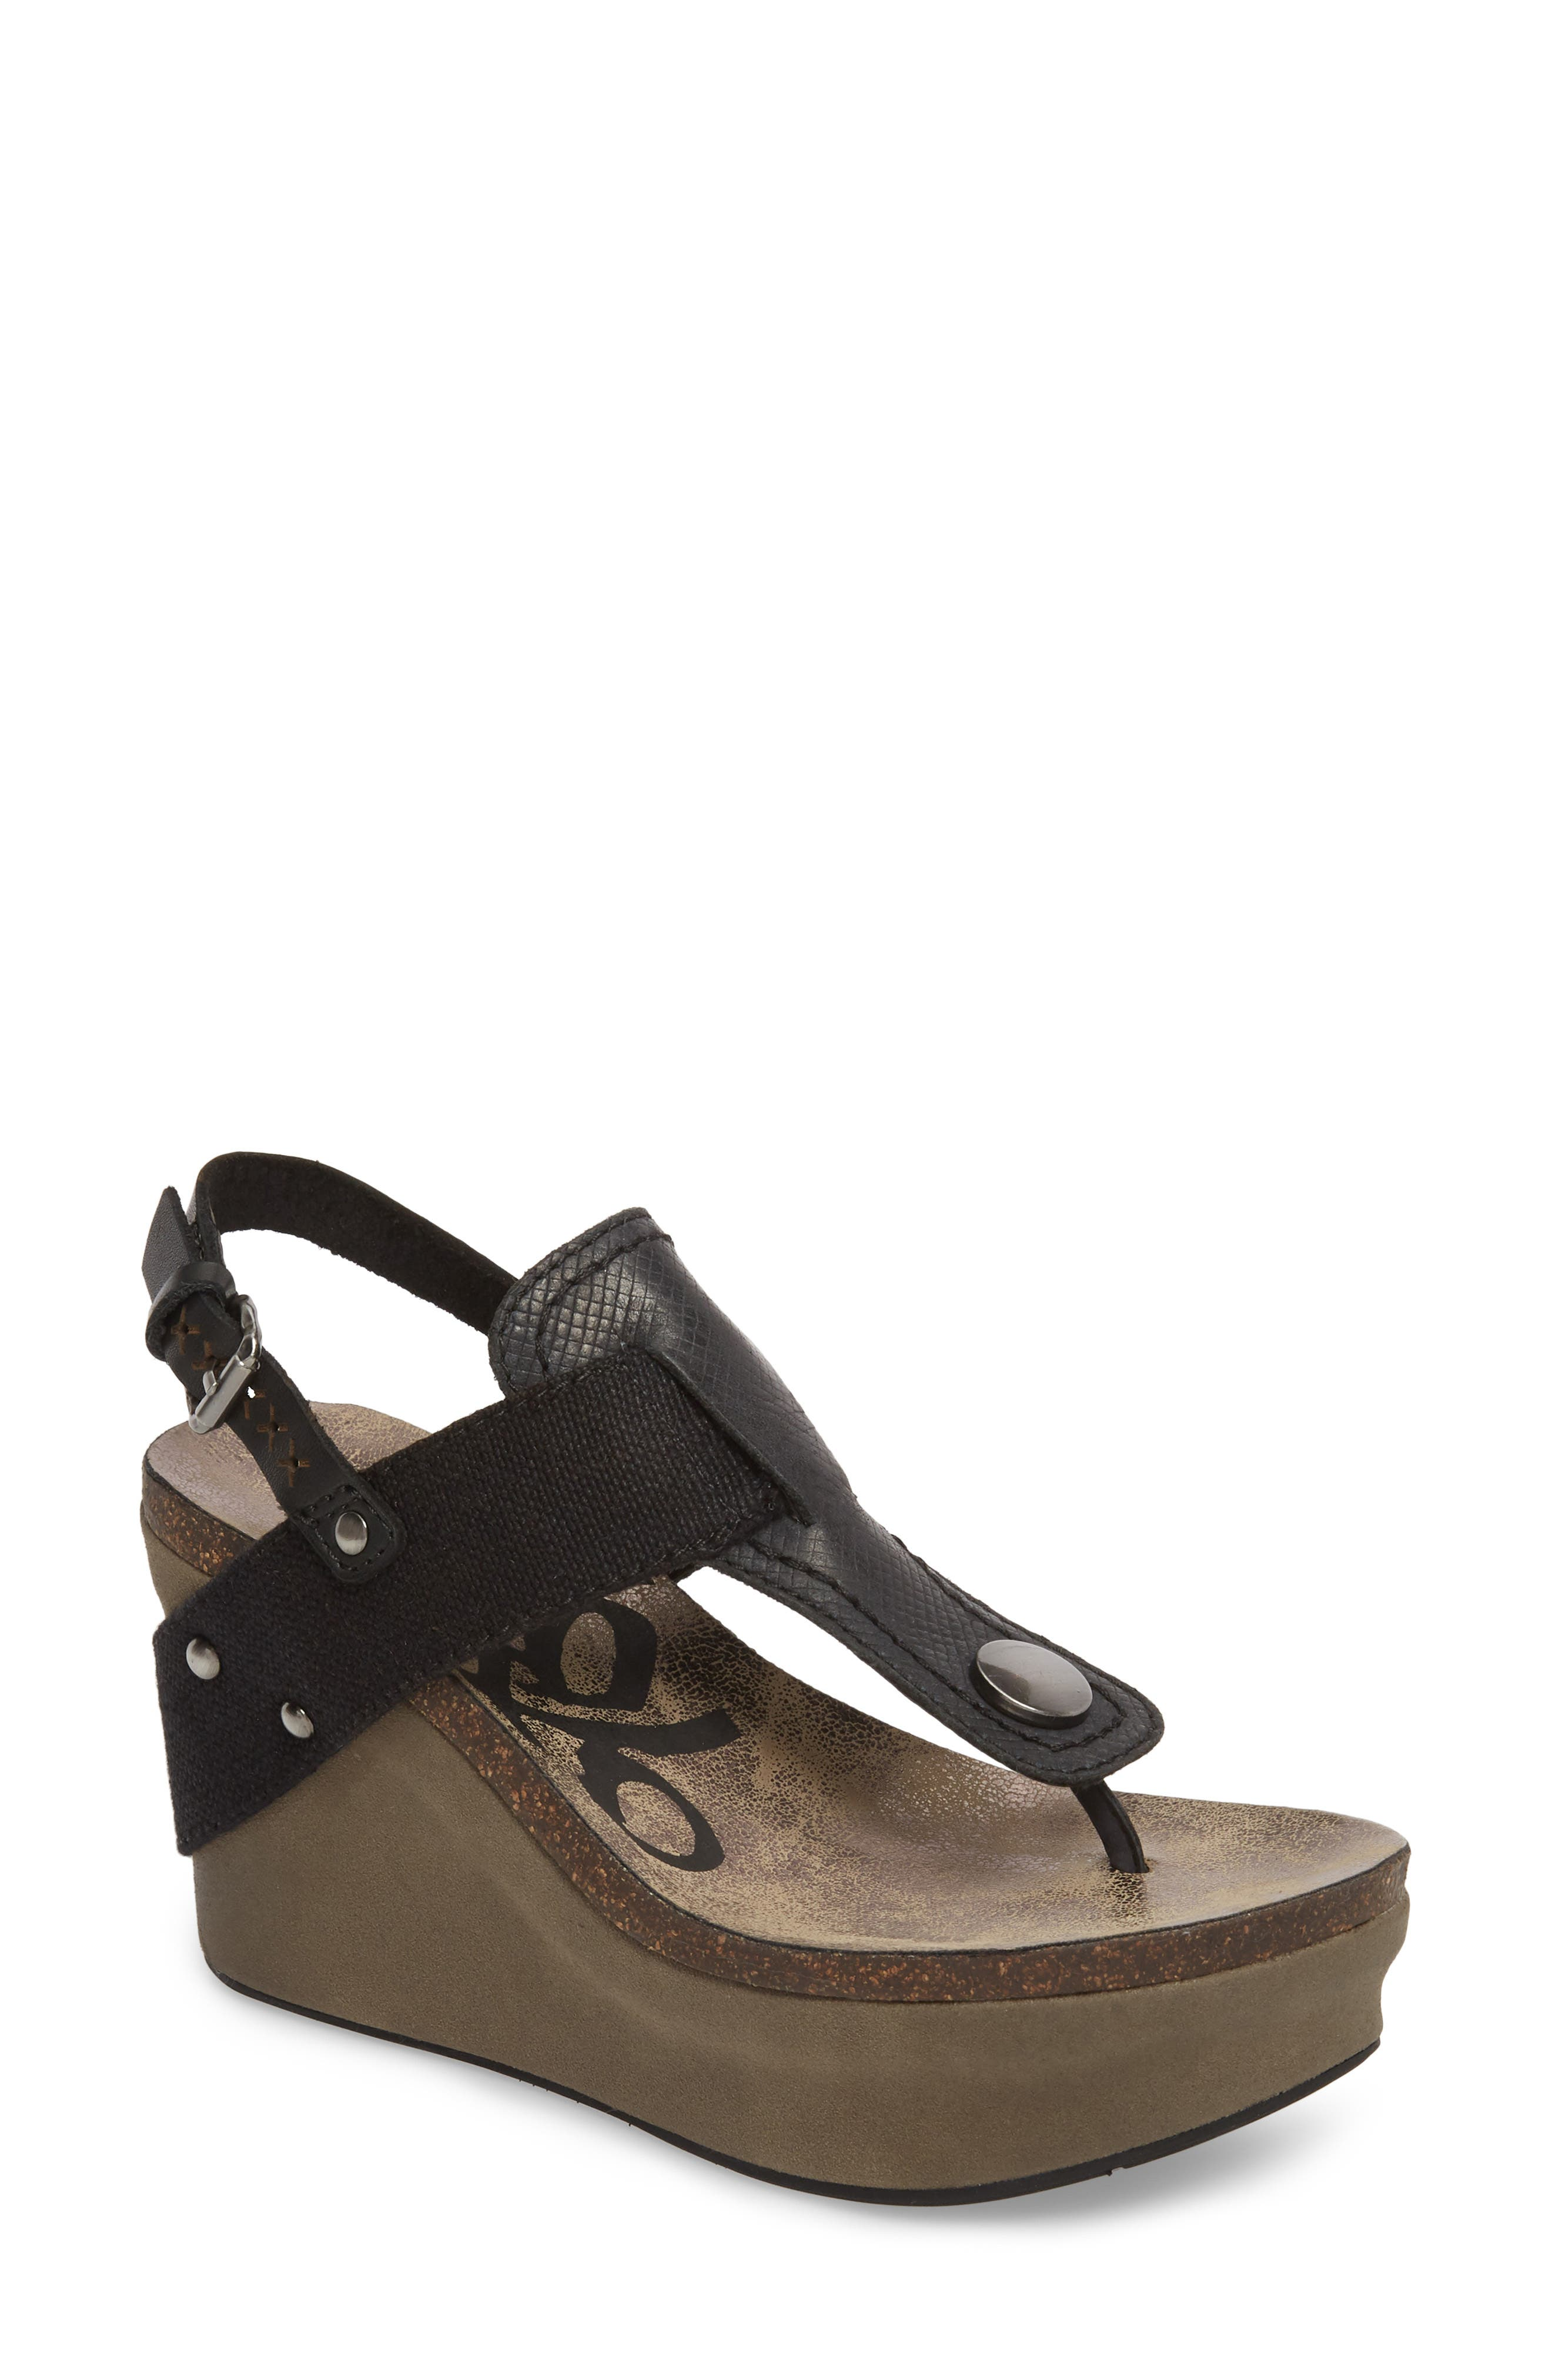 Joyride Wedge Sandal,                             Main thumbnail 1, color,                             Black Leather